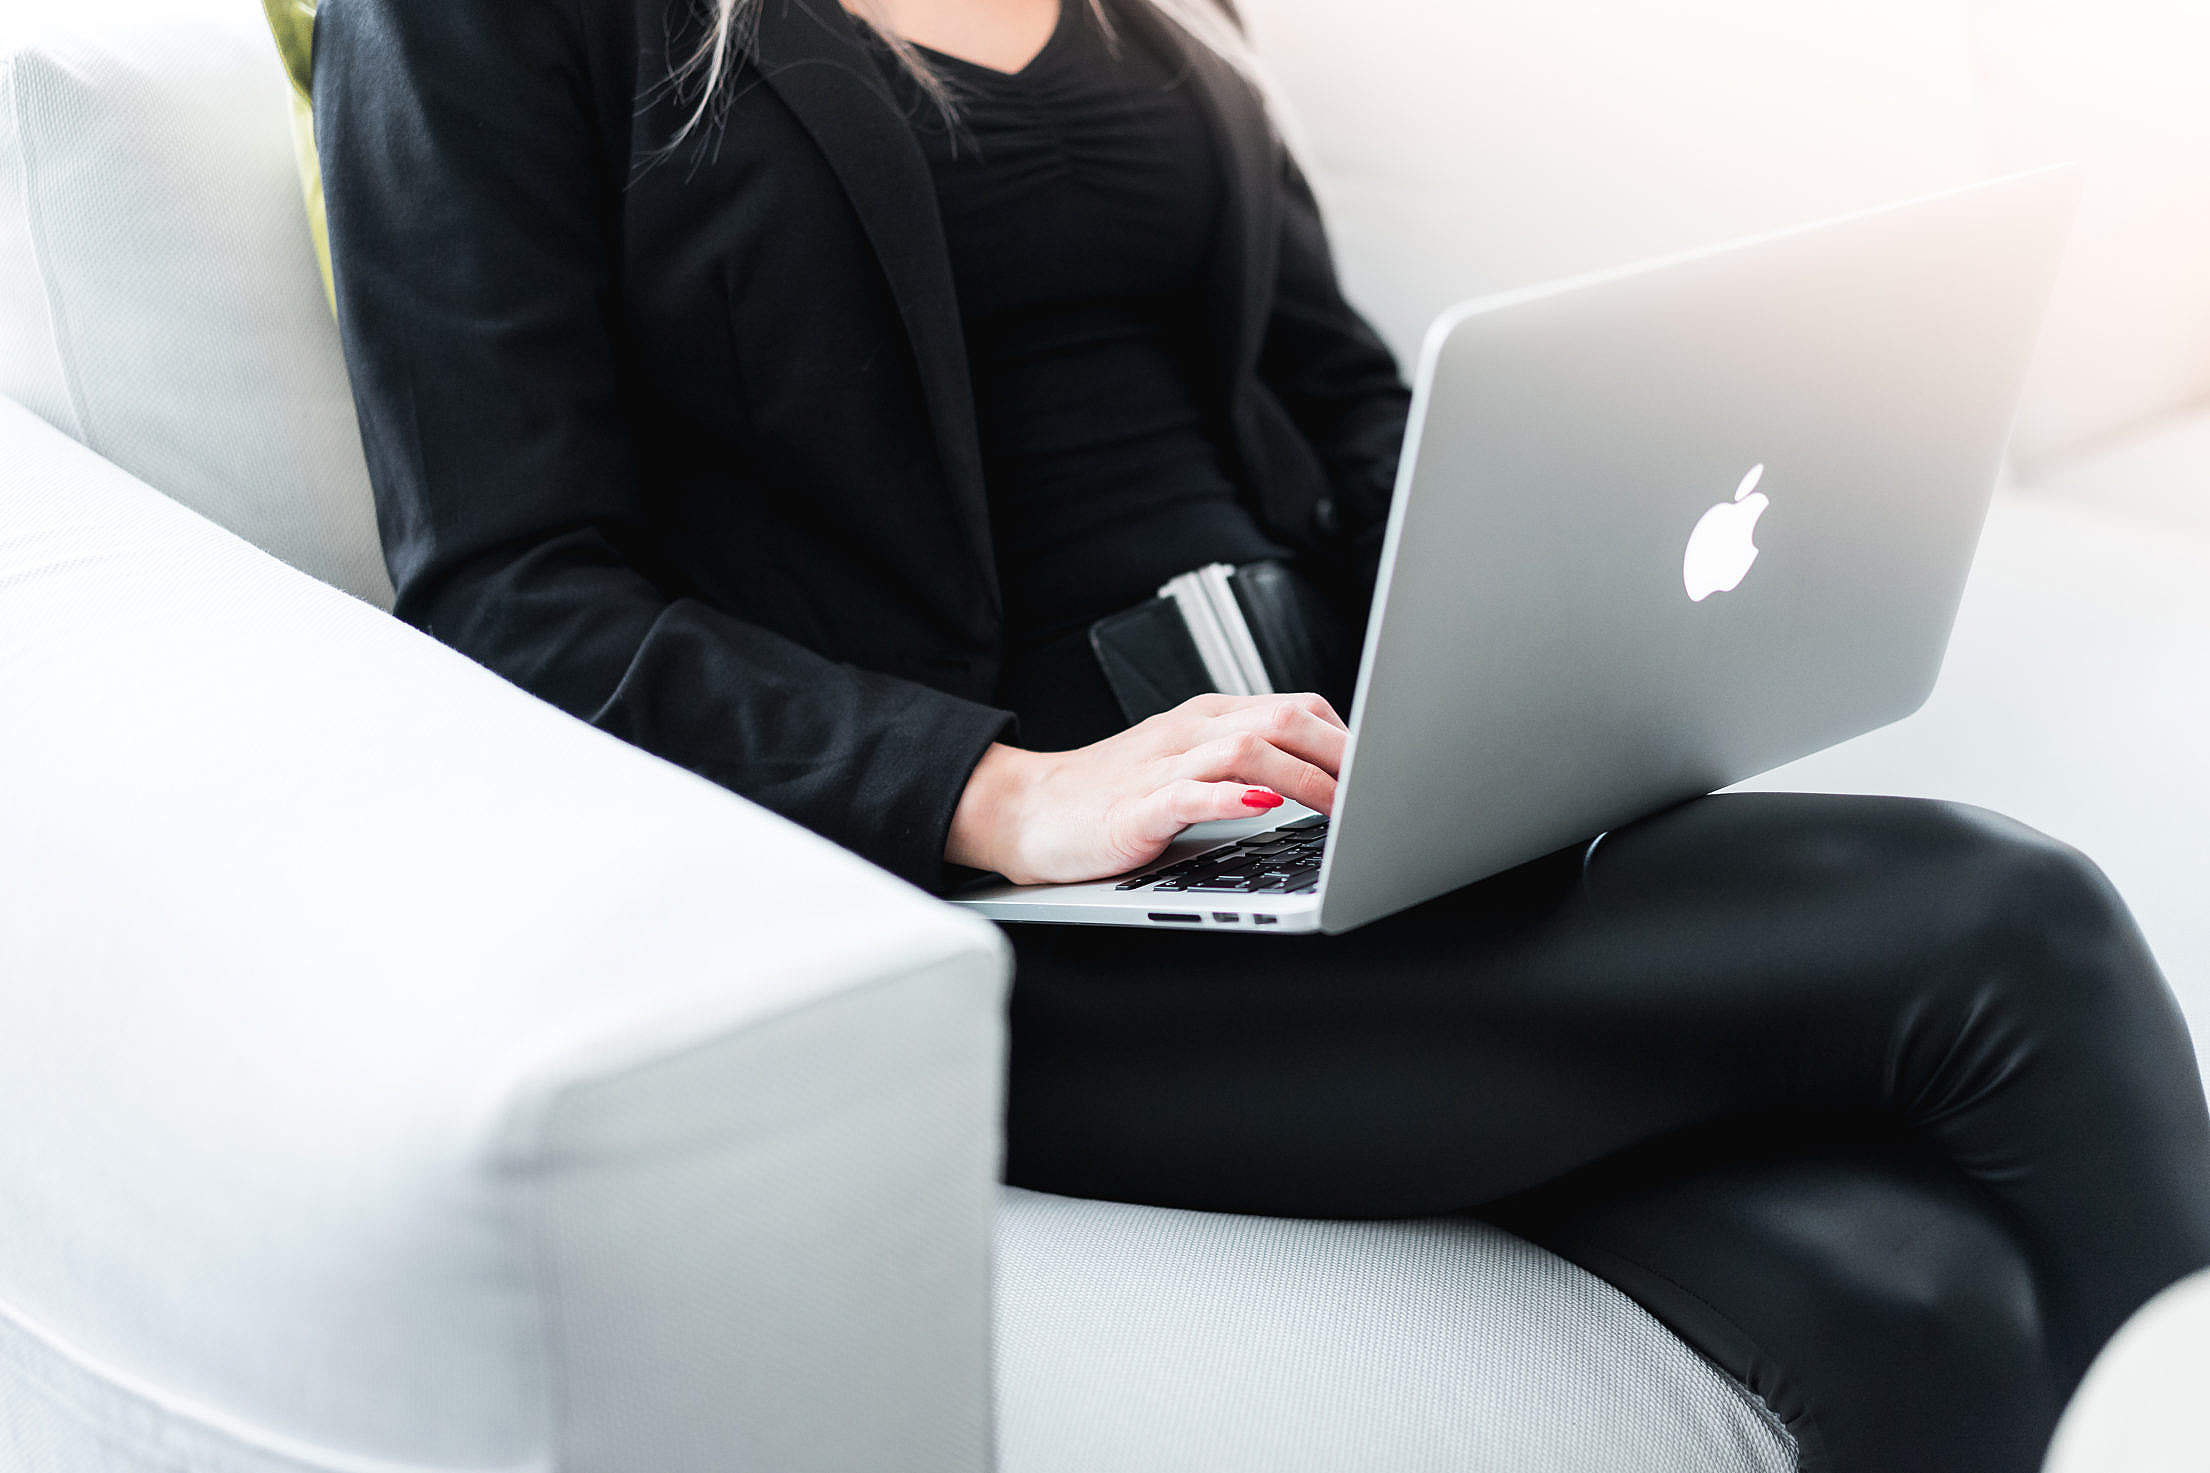 Woman Entrepreneur Working on Silver Laptop Free Stock Photo